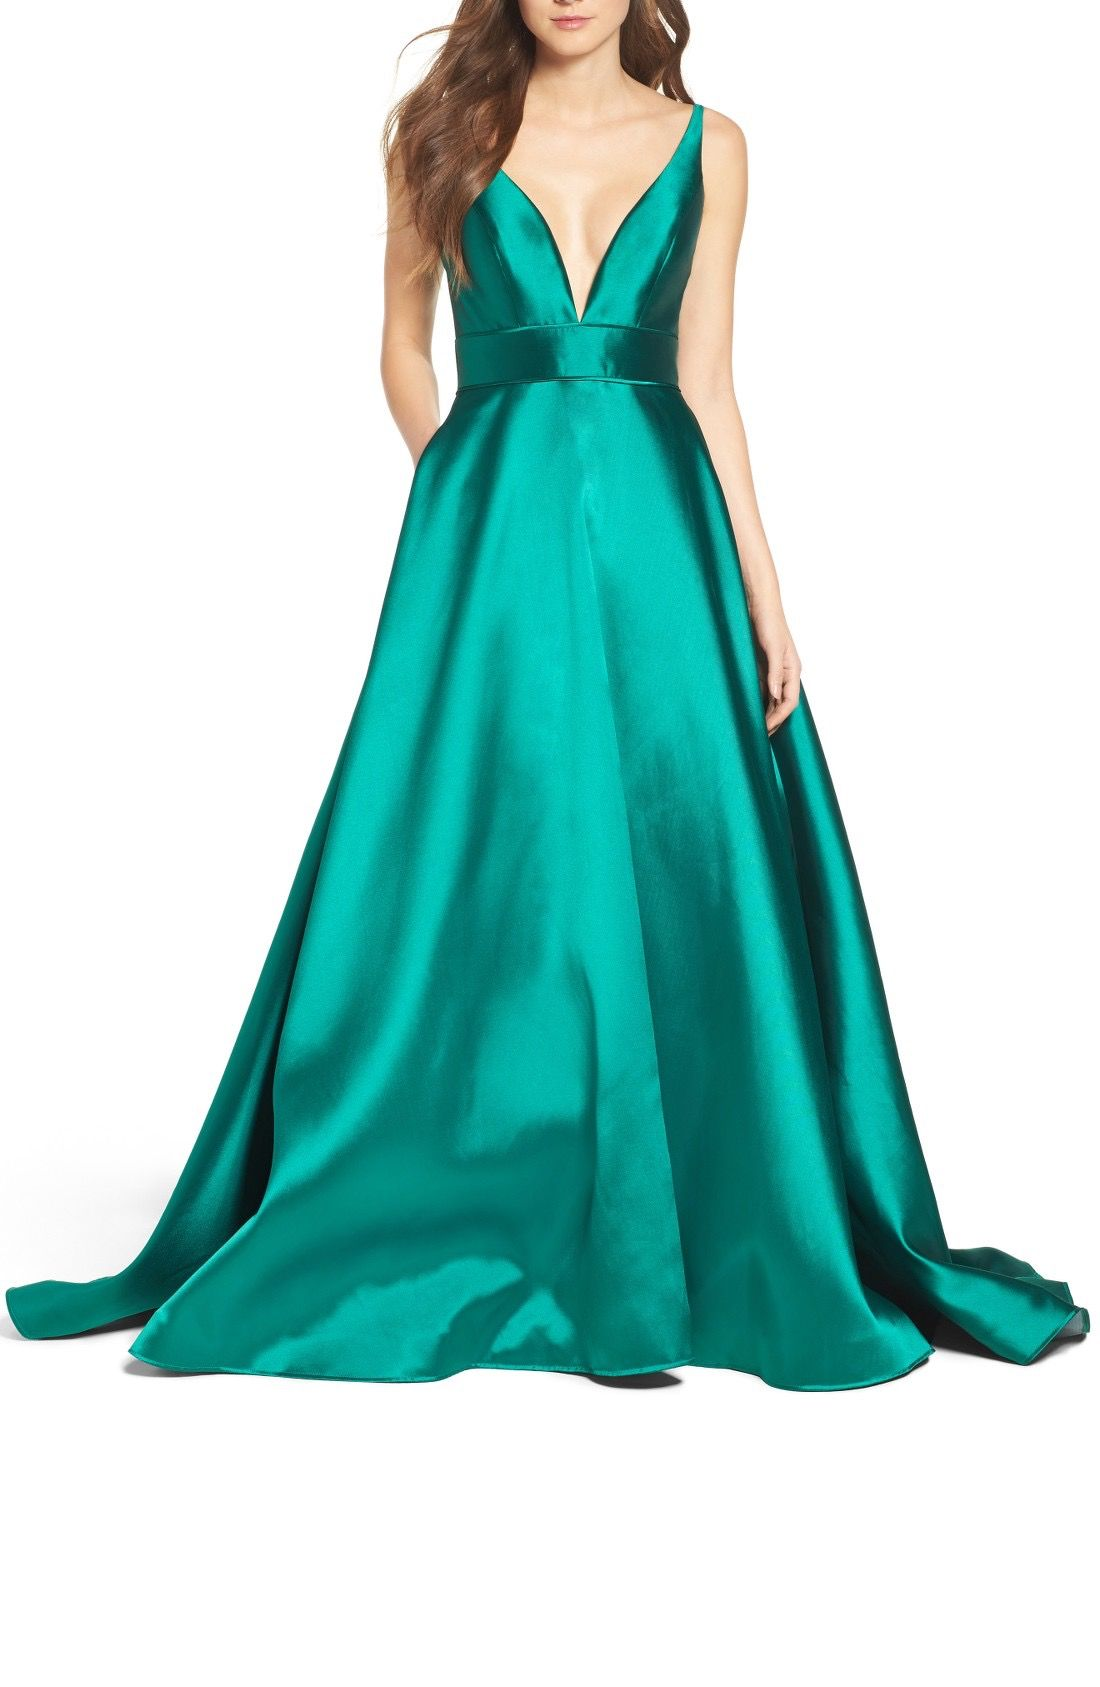 Plunging Sweetheart Neck Ballgown | Weddings